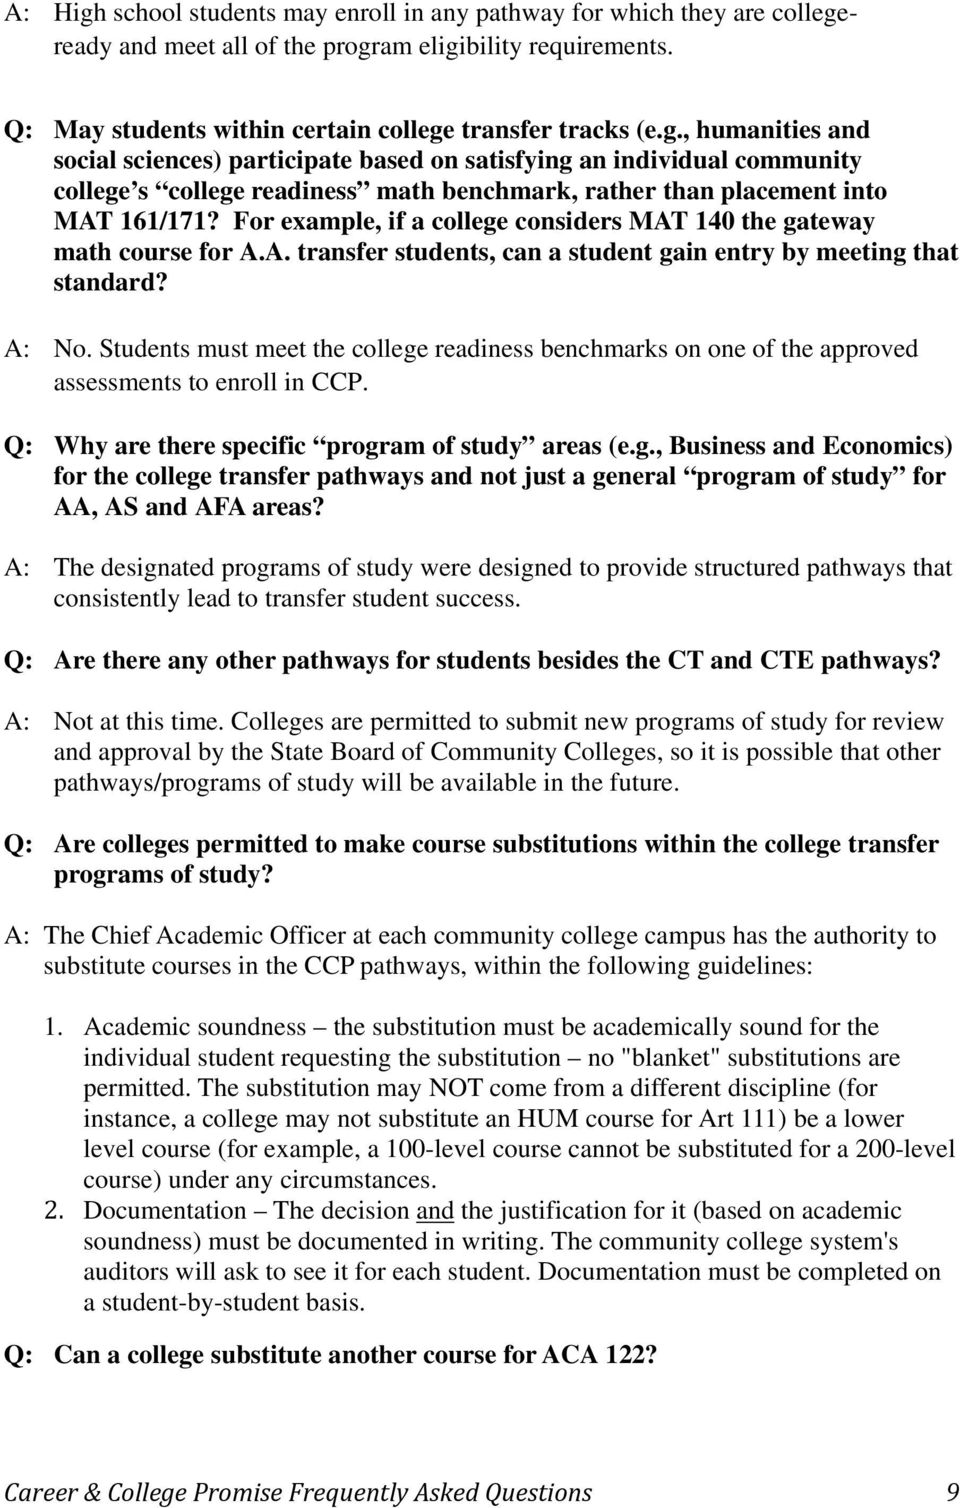 Students must meet the college readiness benchmarks on one of the approved assessments to enroll in CCP. Q: Why are there specific program of study areas (e.g., Business and Economics) for the college transfer pathways and not just a general program of study for AA, AS and AFA areas?